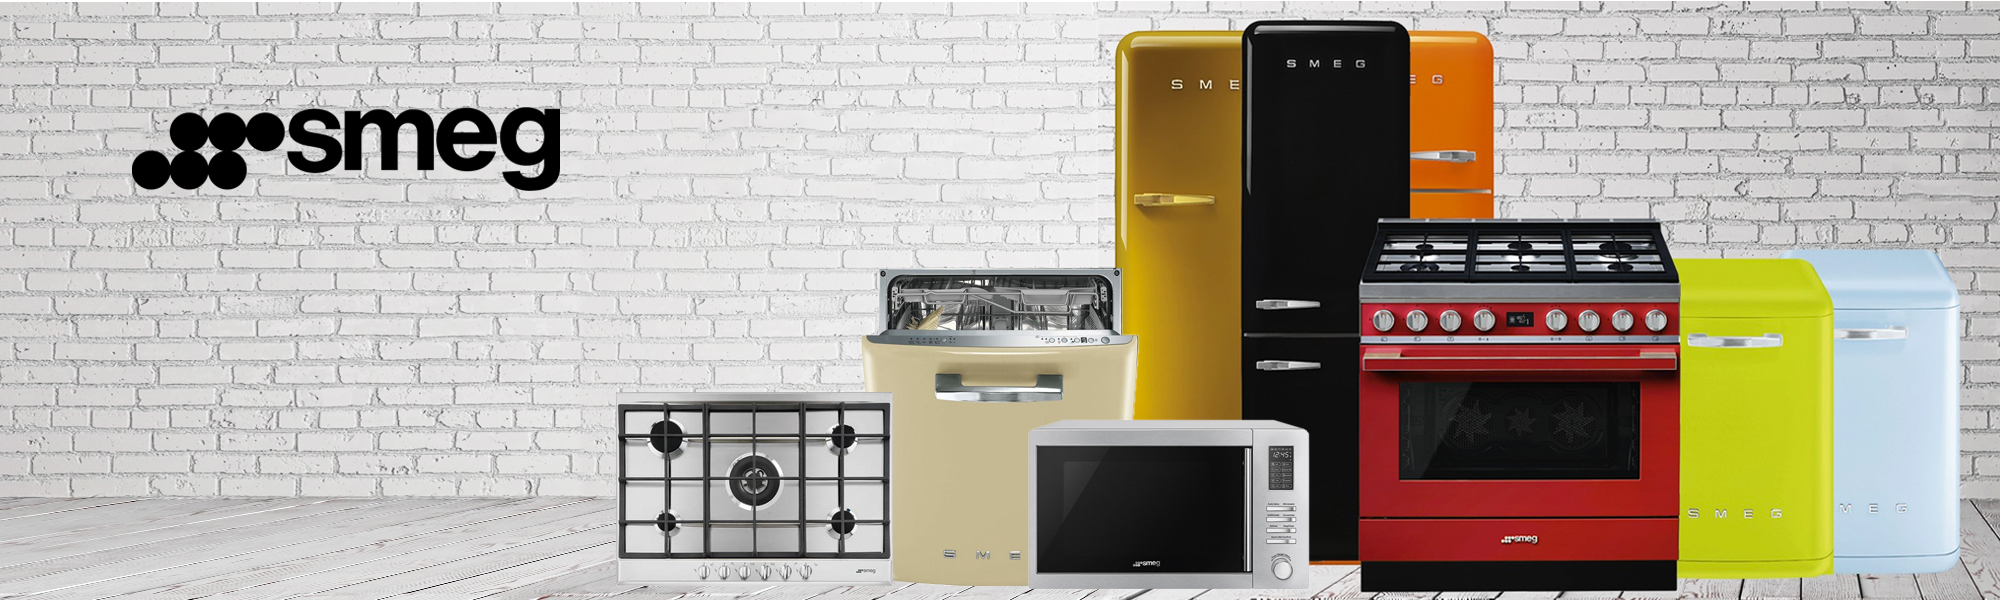 Are you looking smeg service center for home appliances repair?